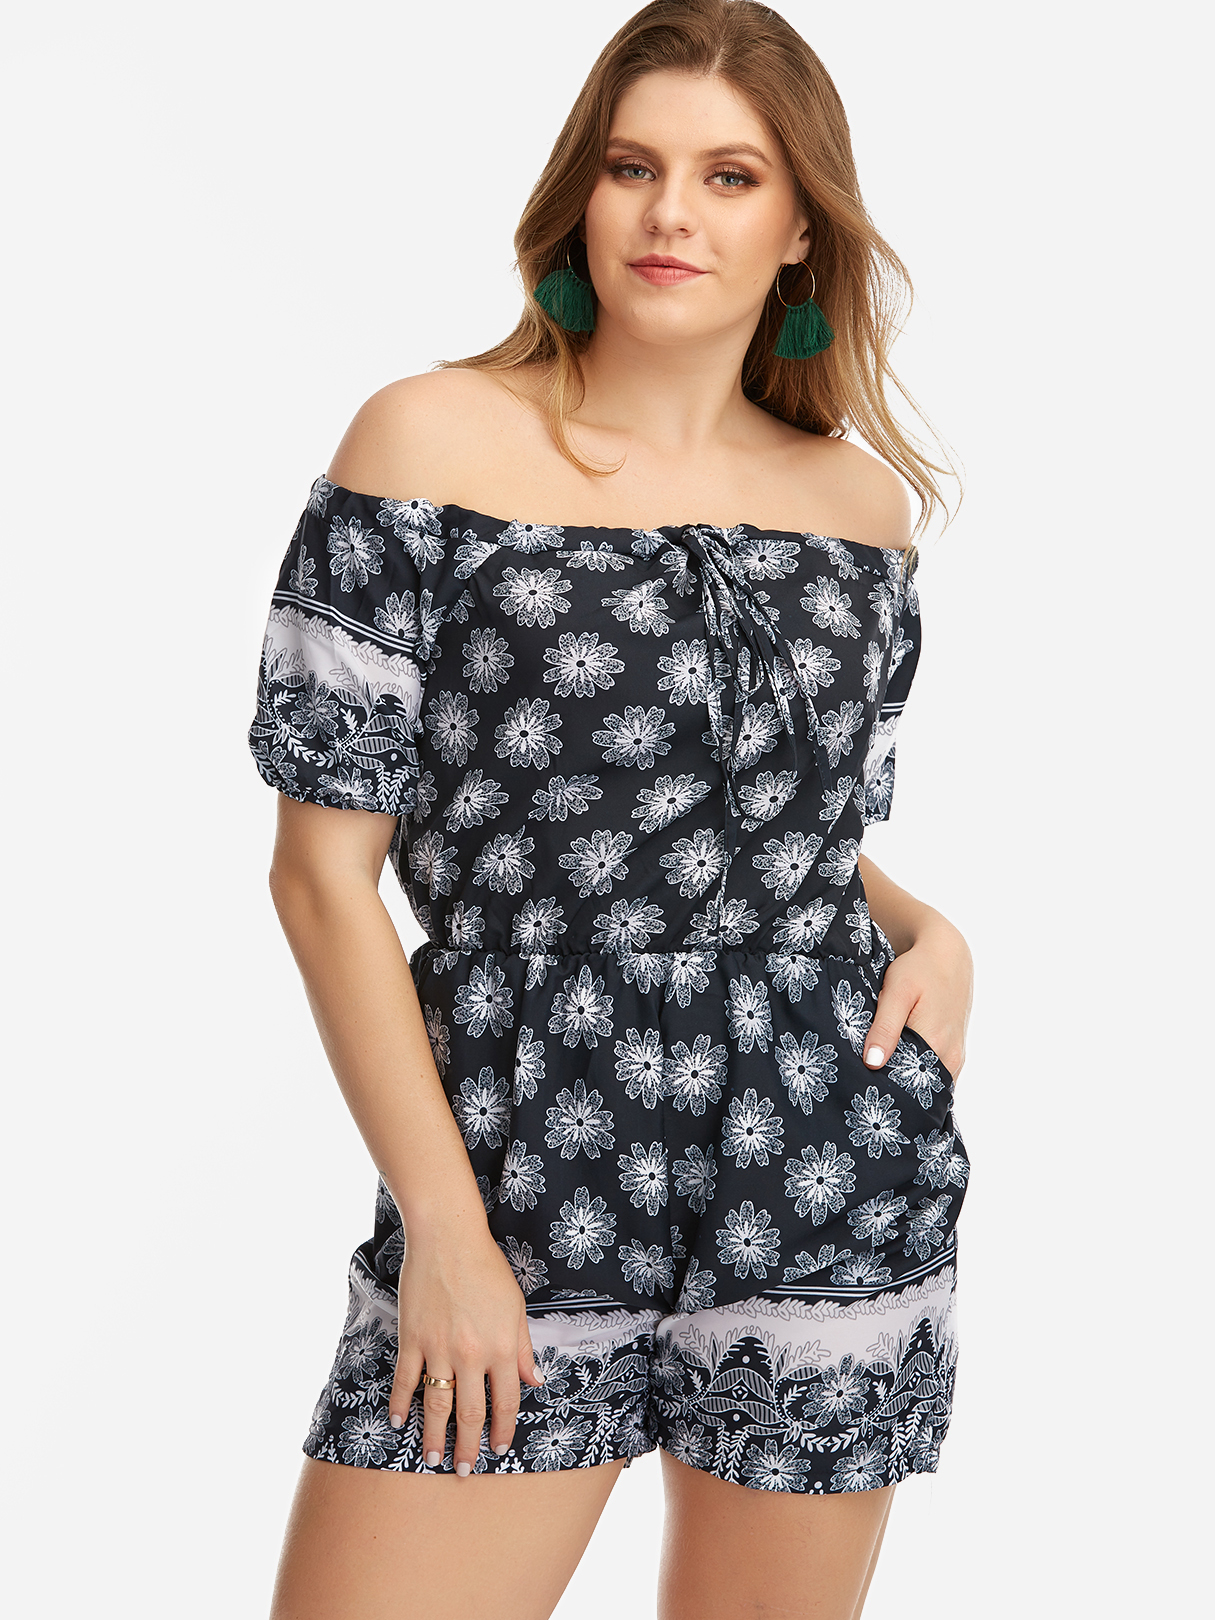 Multi Floral Print Off The Shoulder Romper charming off the shoulder floral print women s romper